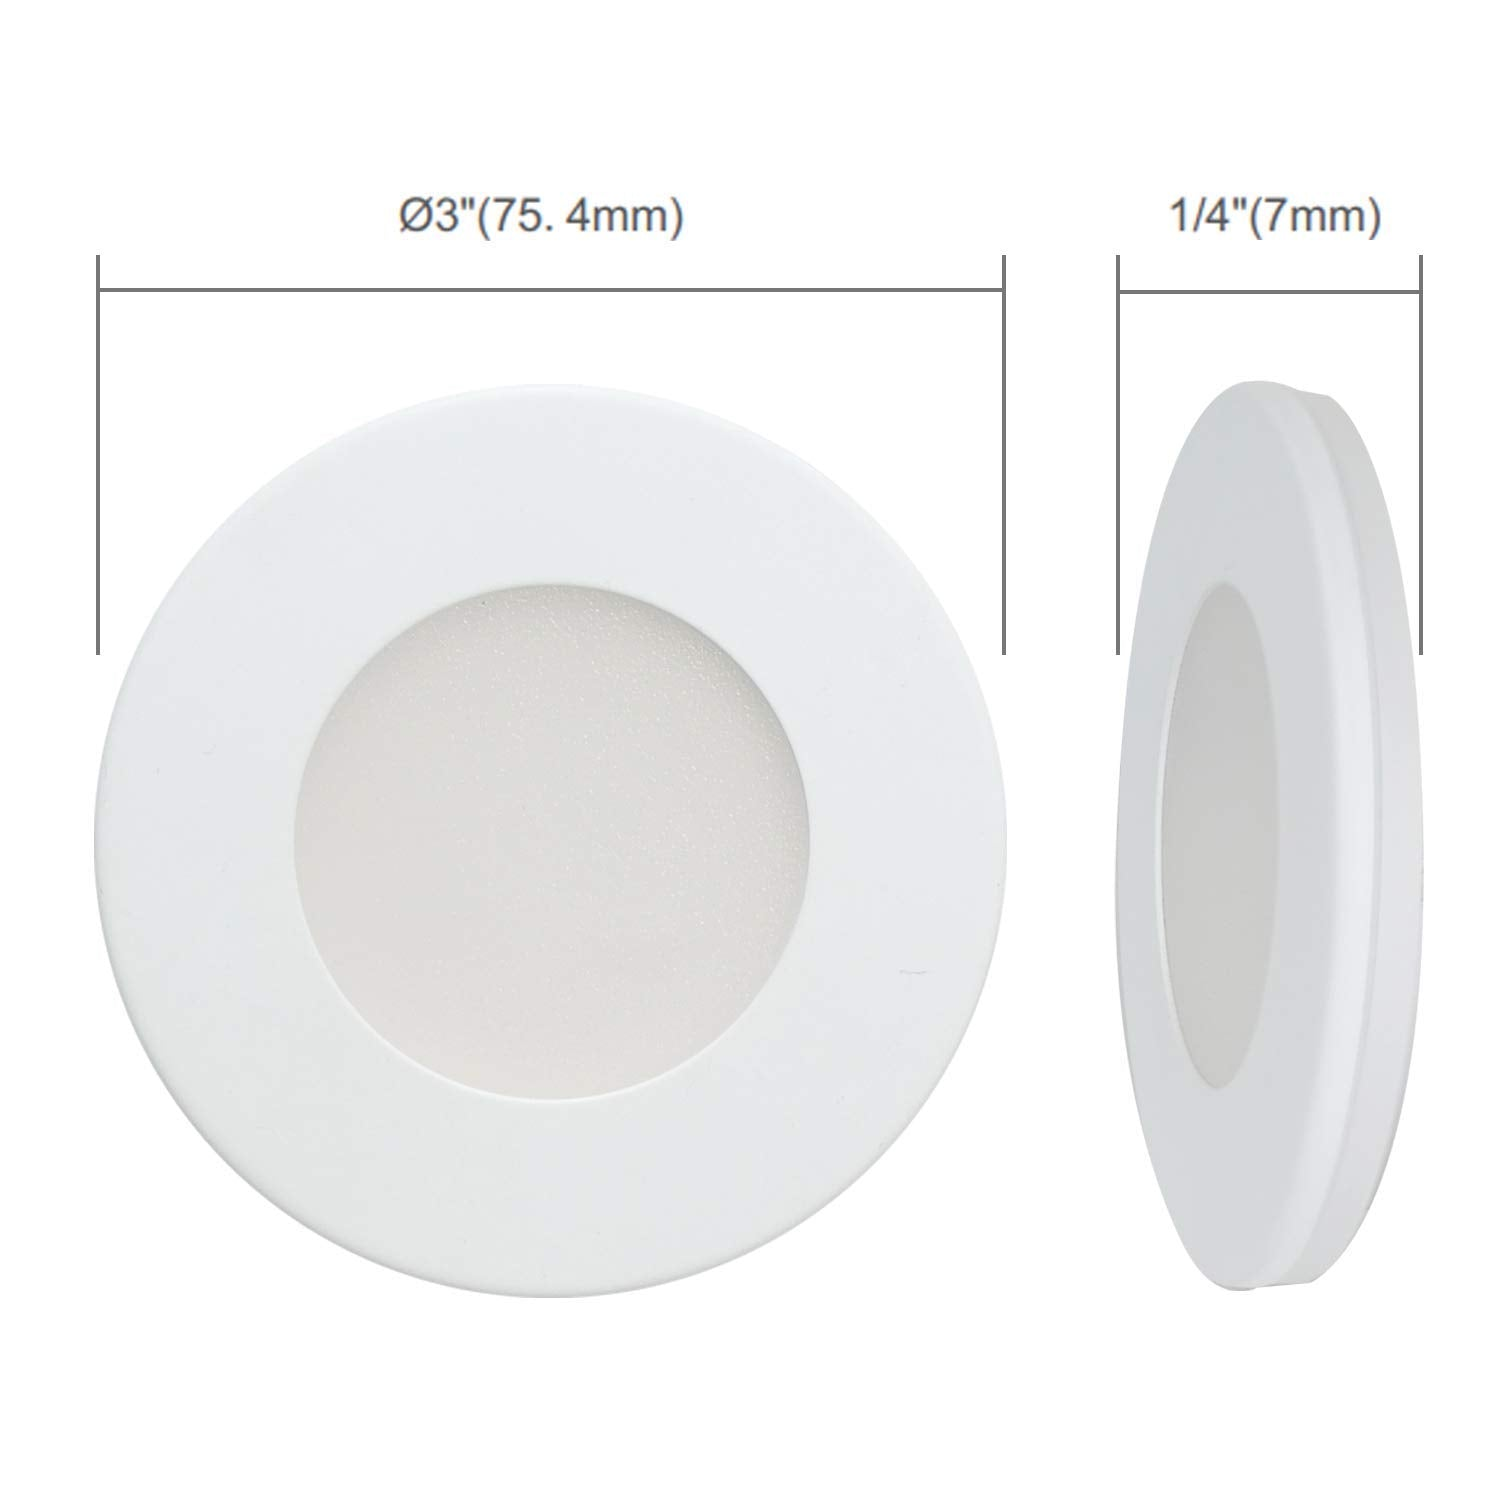 Ultra Slim LED DC 24V Under Cabinet Puck Light, Surface Mount or Recessed Mount, 3000K Warm White, ETL Listed (Nickle Cover) - Consavvy